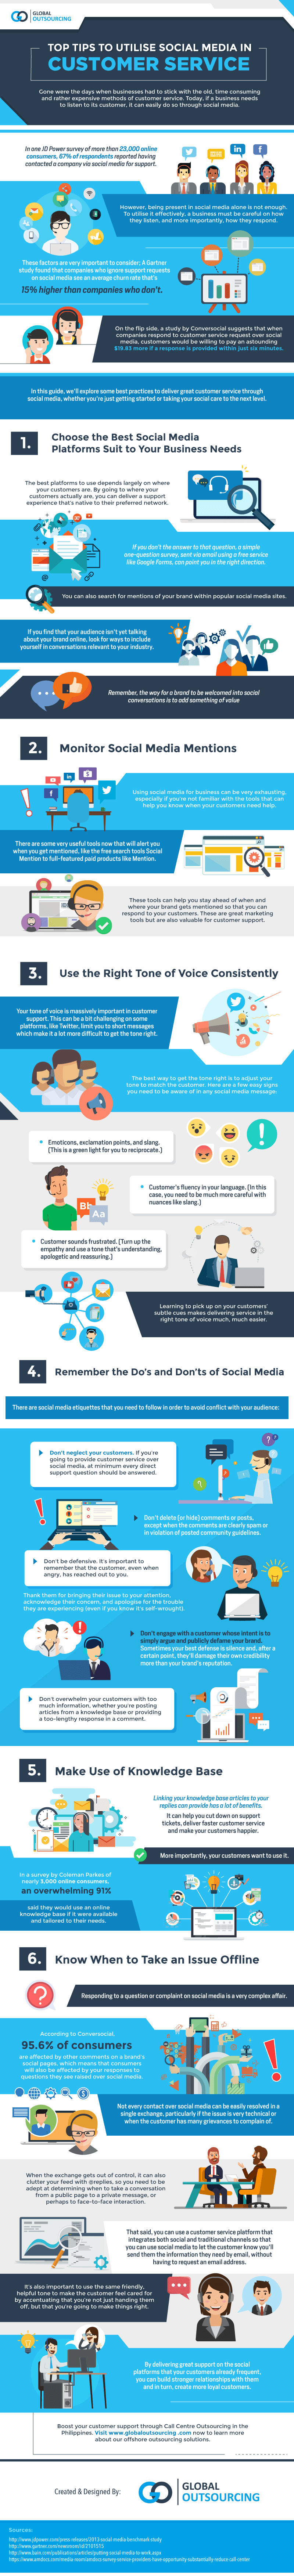 6 Keys to Customer Success Using Social Media